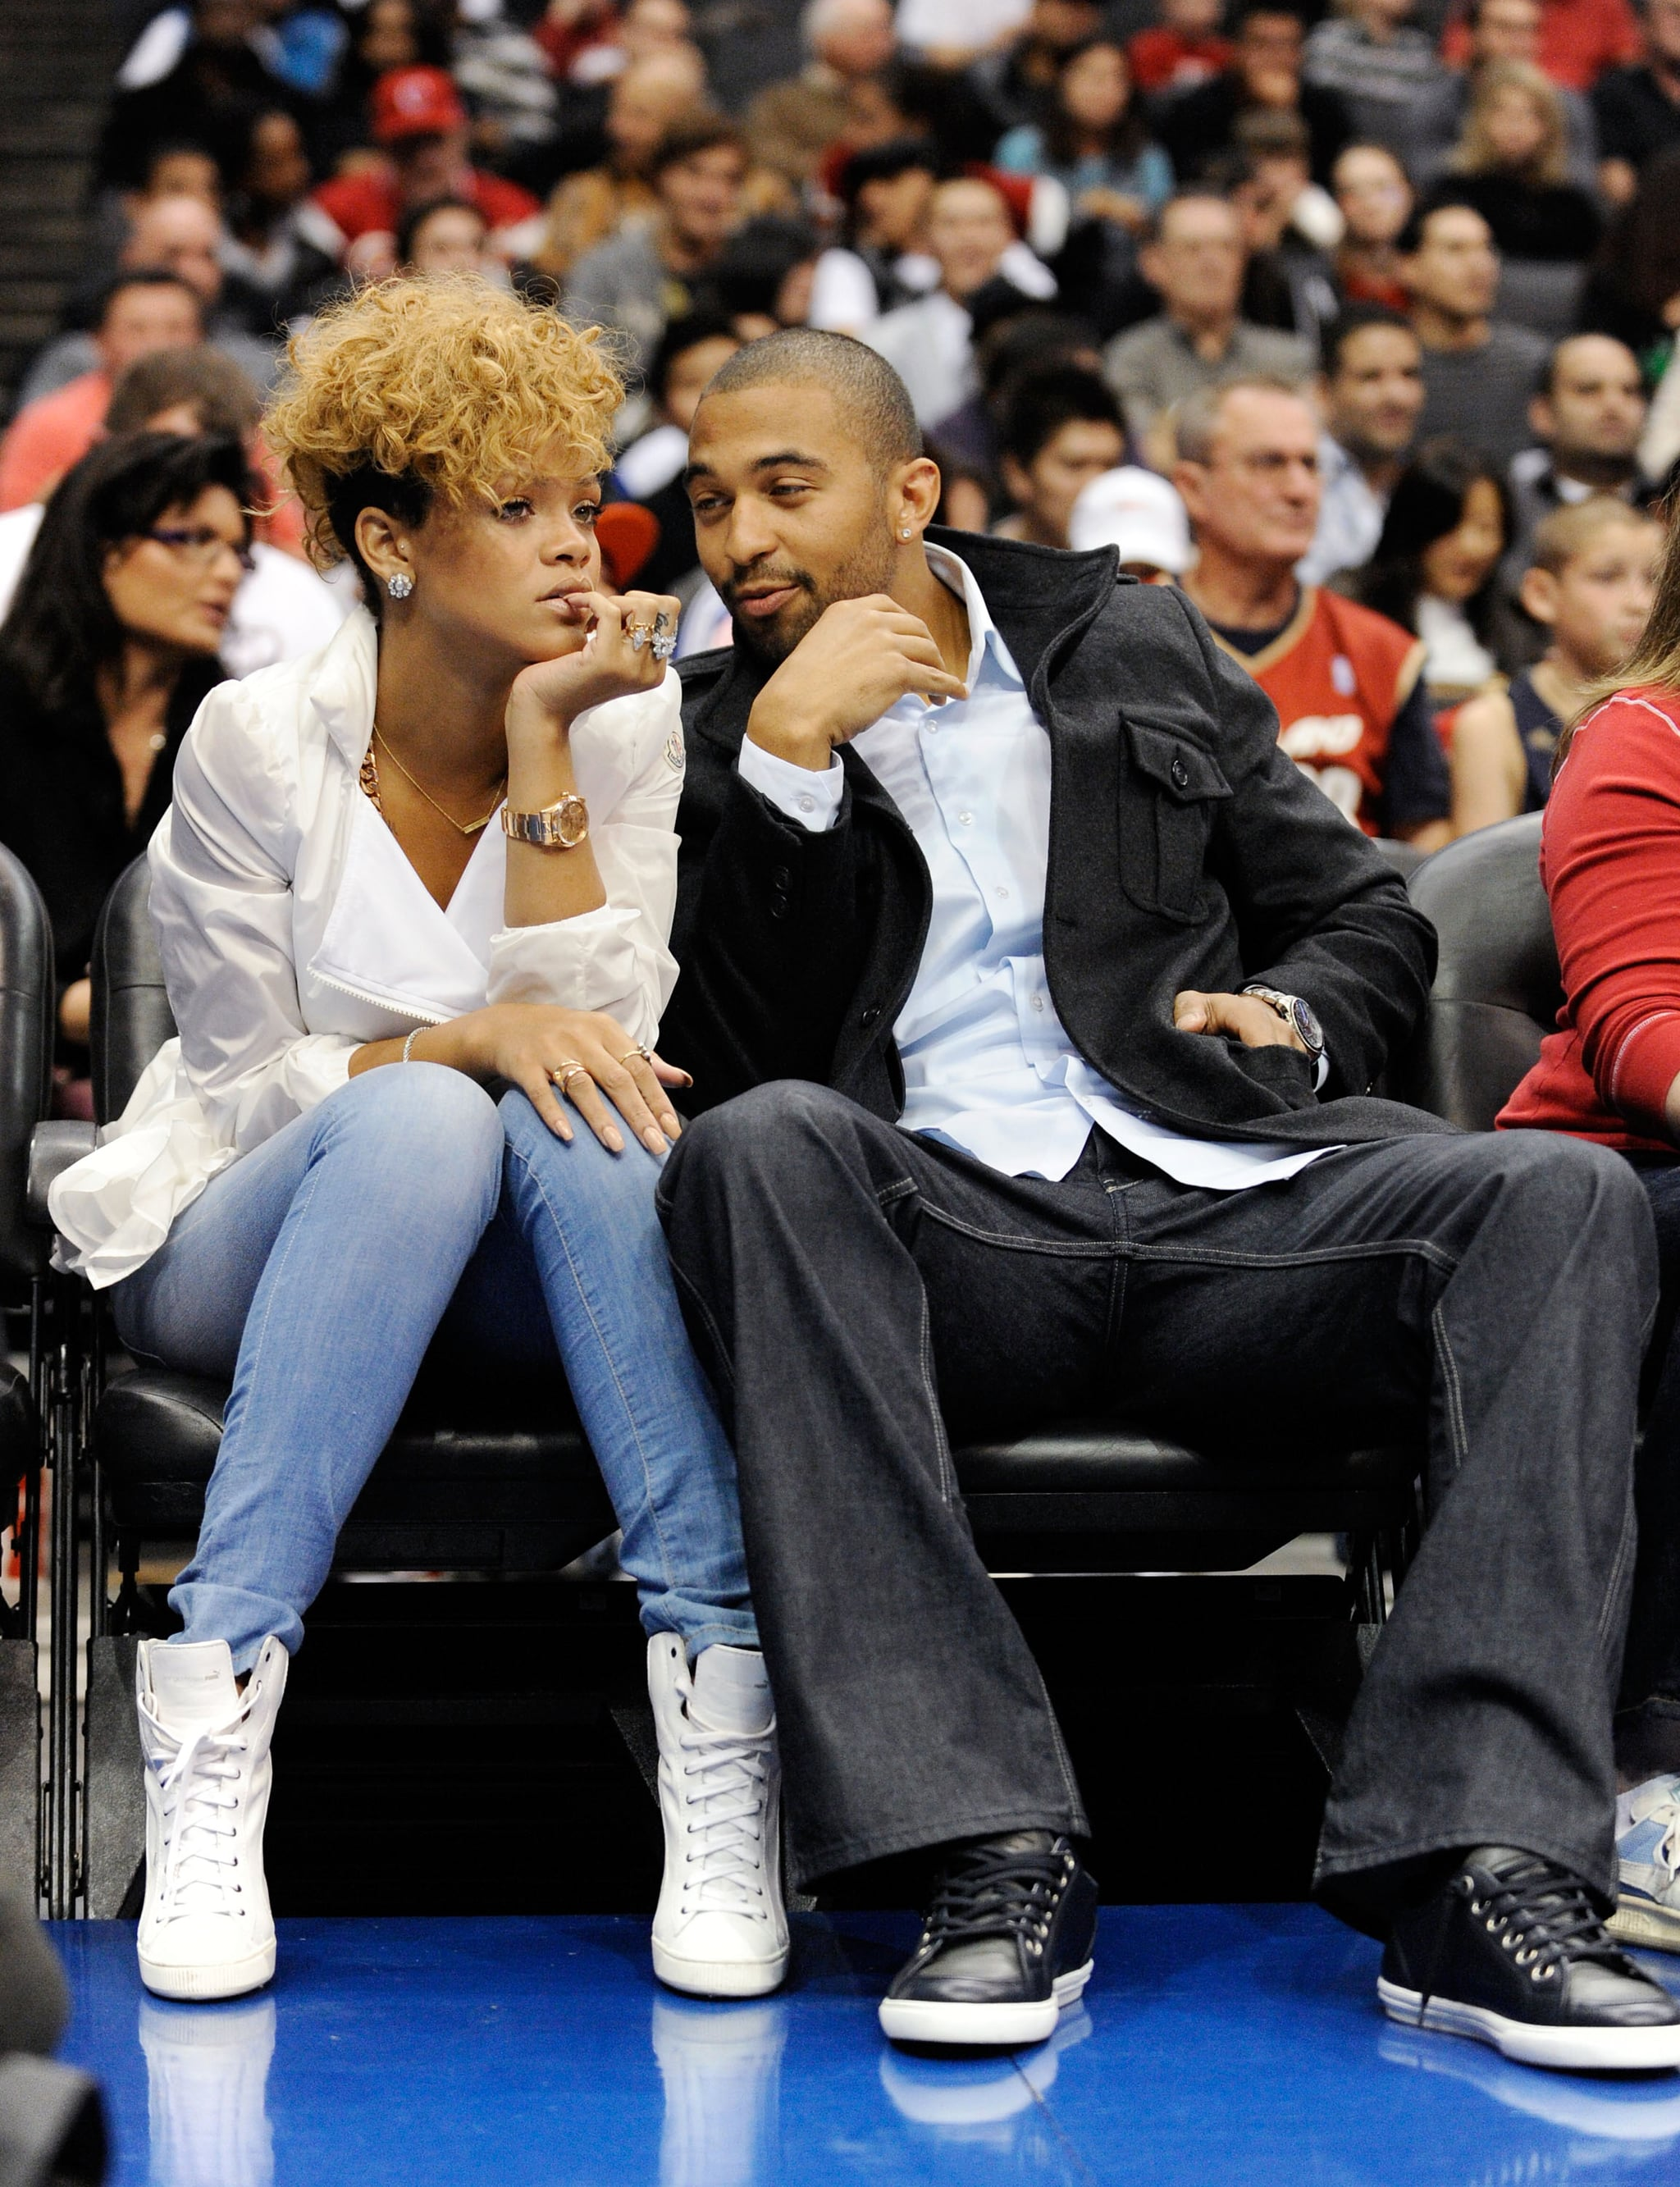 Rihanna And Matt Kemp At A Lakers Game  Popsugar Celebrity-9669